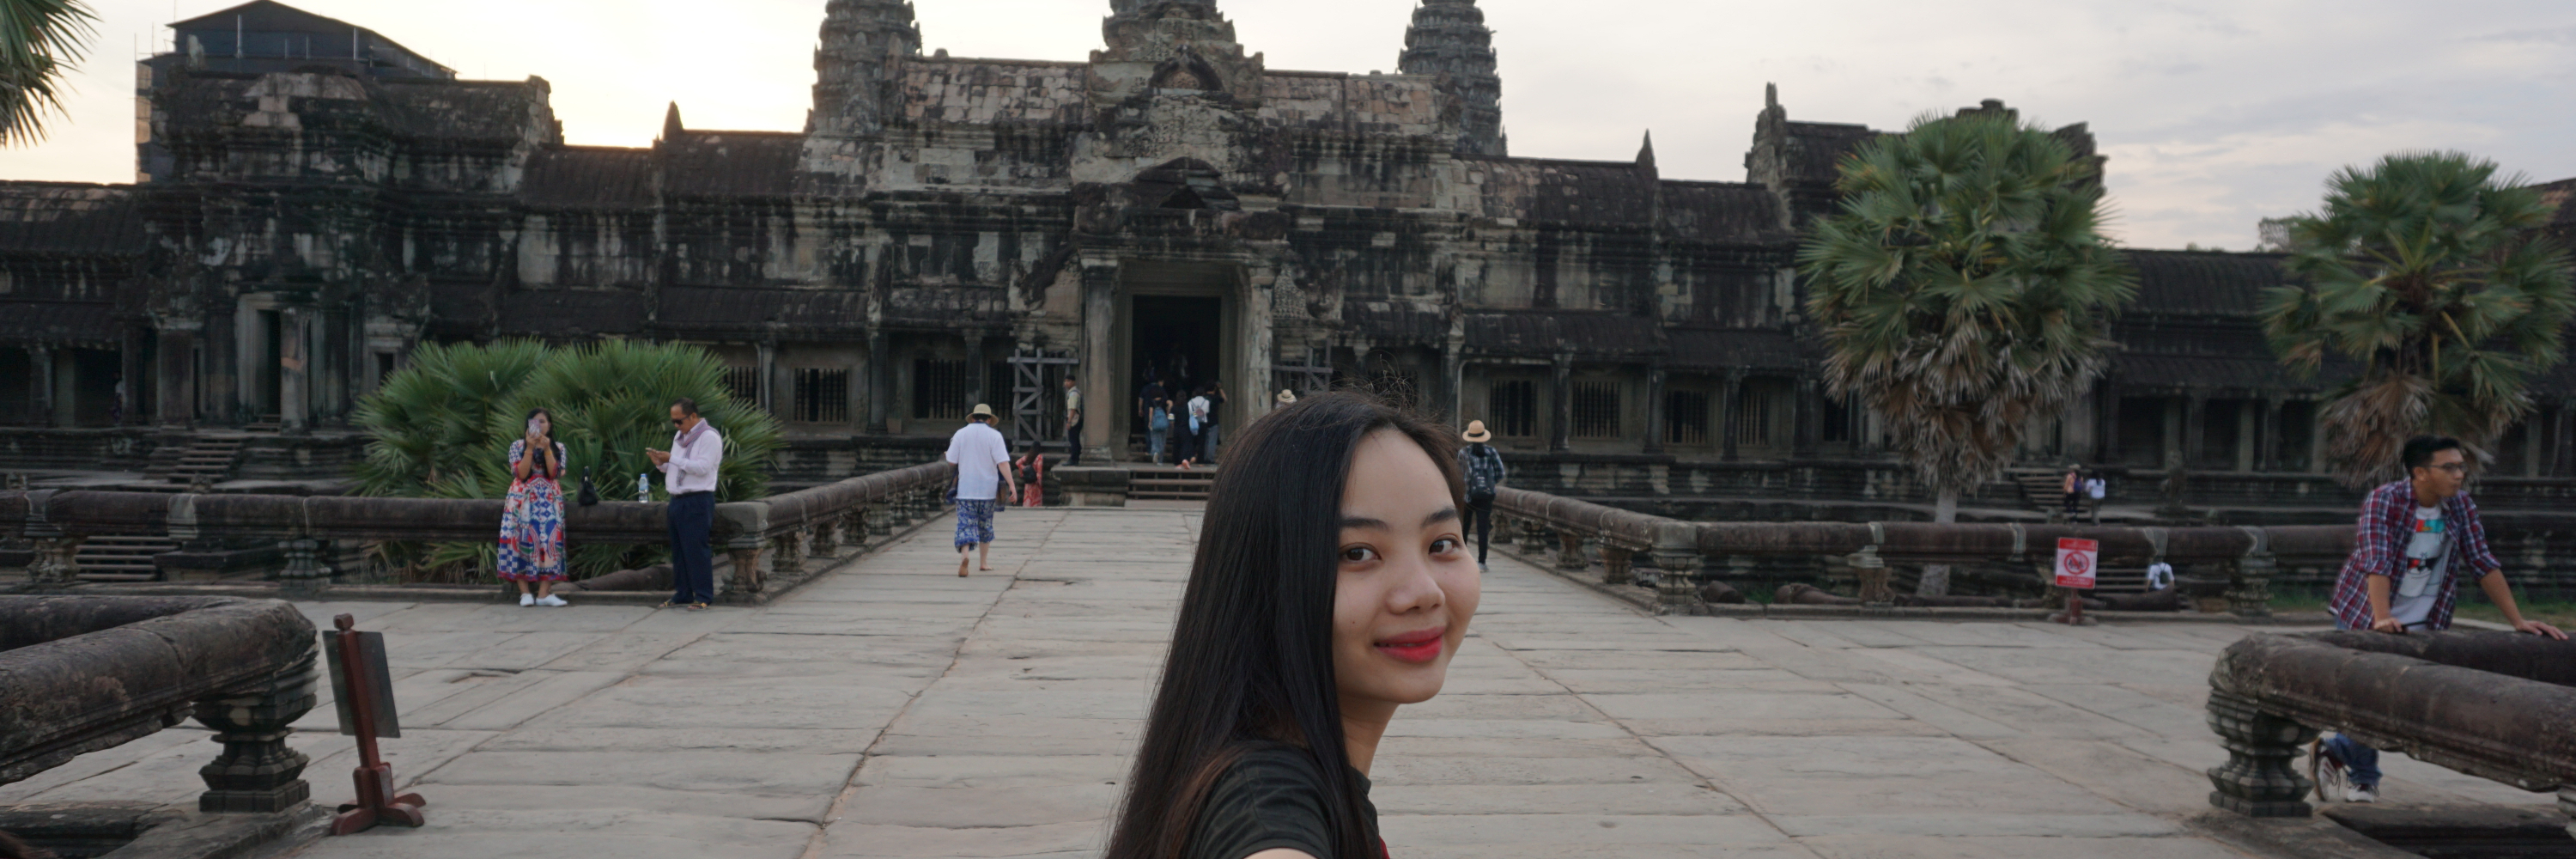 https://gody.vn/blog/ninh.vt.11072893/post/kingdom-of-cambodia-6578